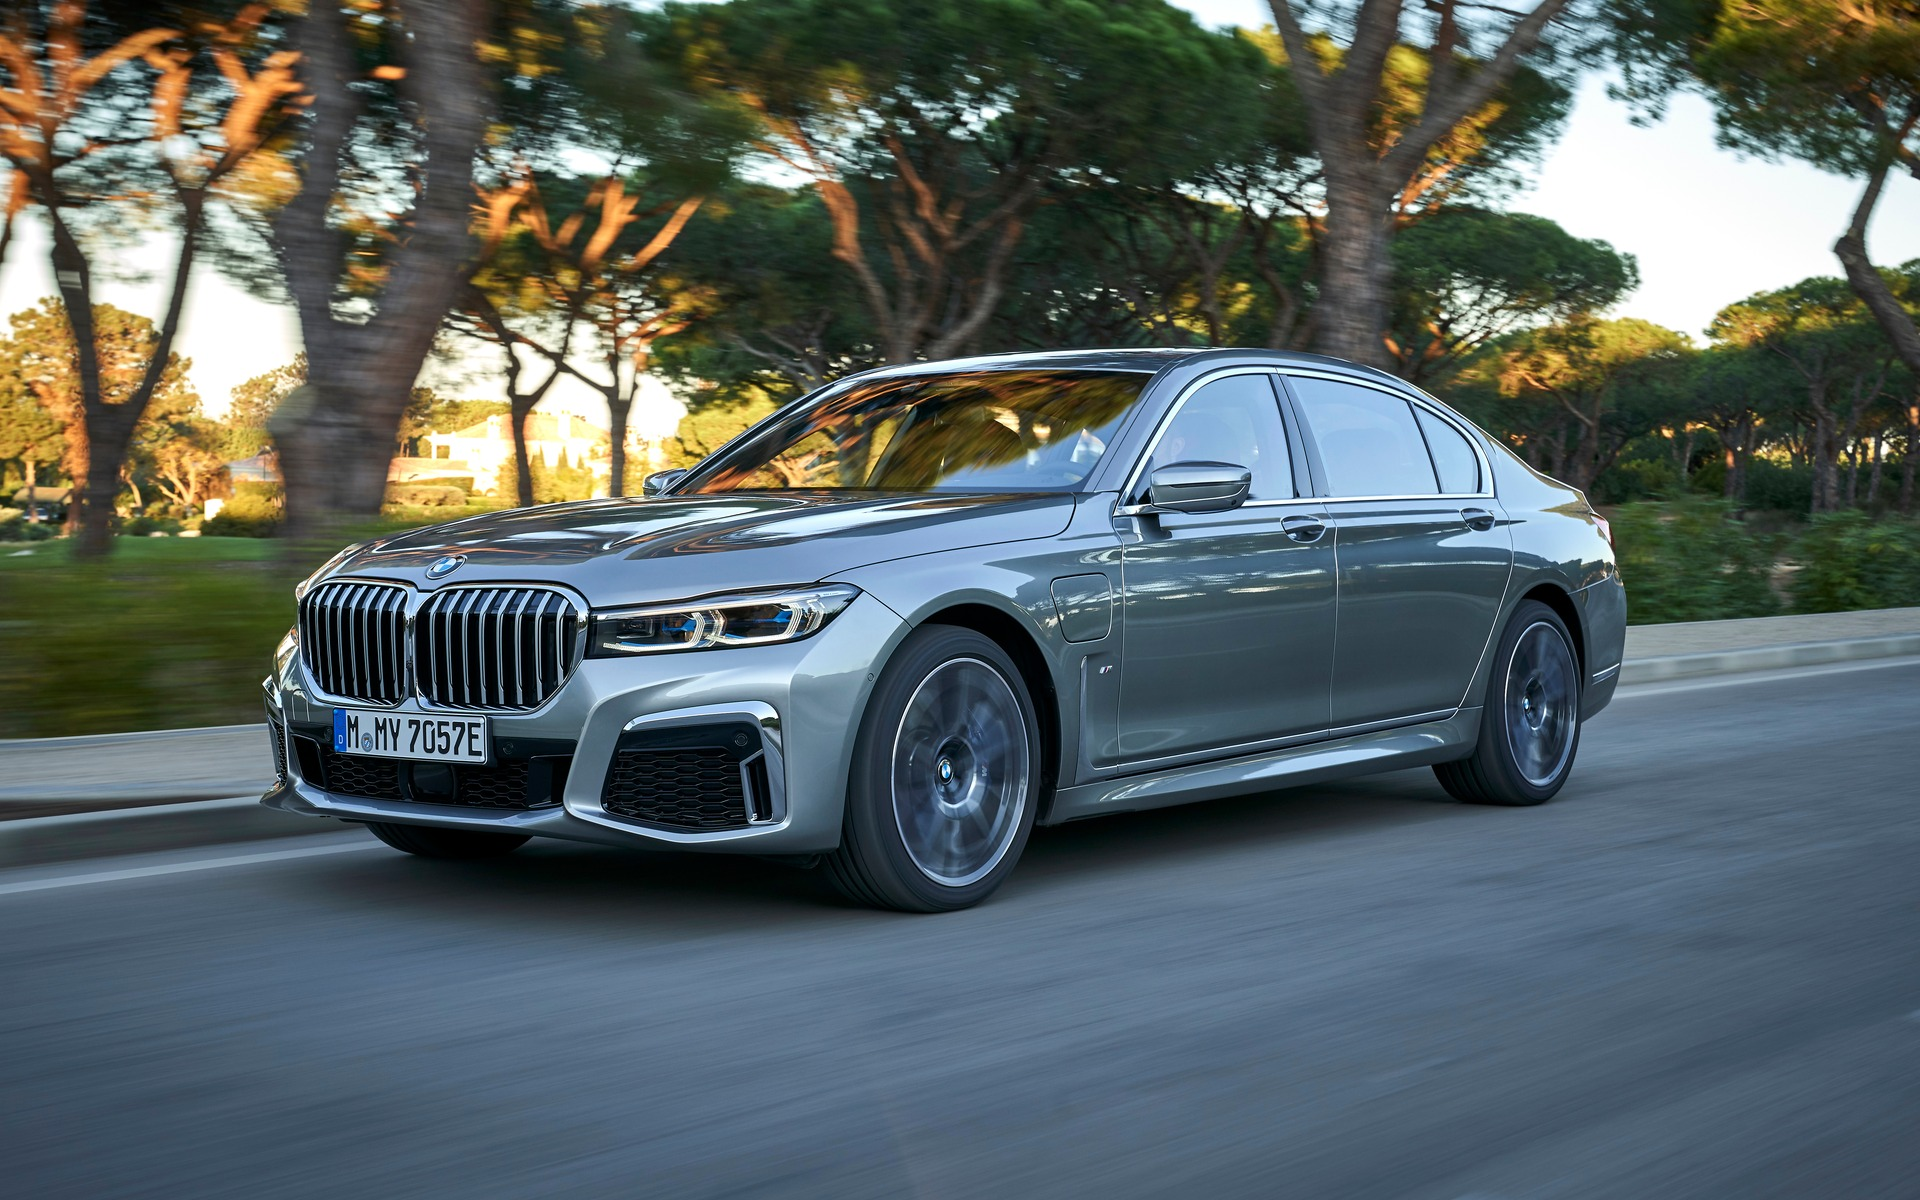 2020 BMW 7 Series: 6th Generation Gets a Major Update - The